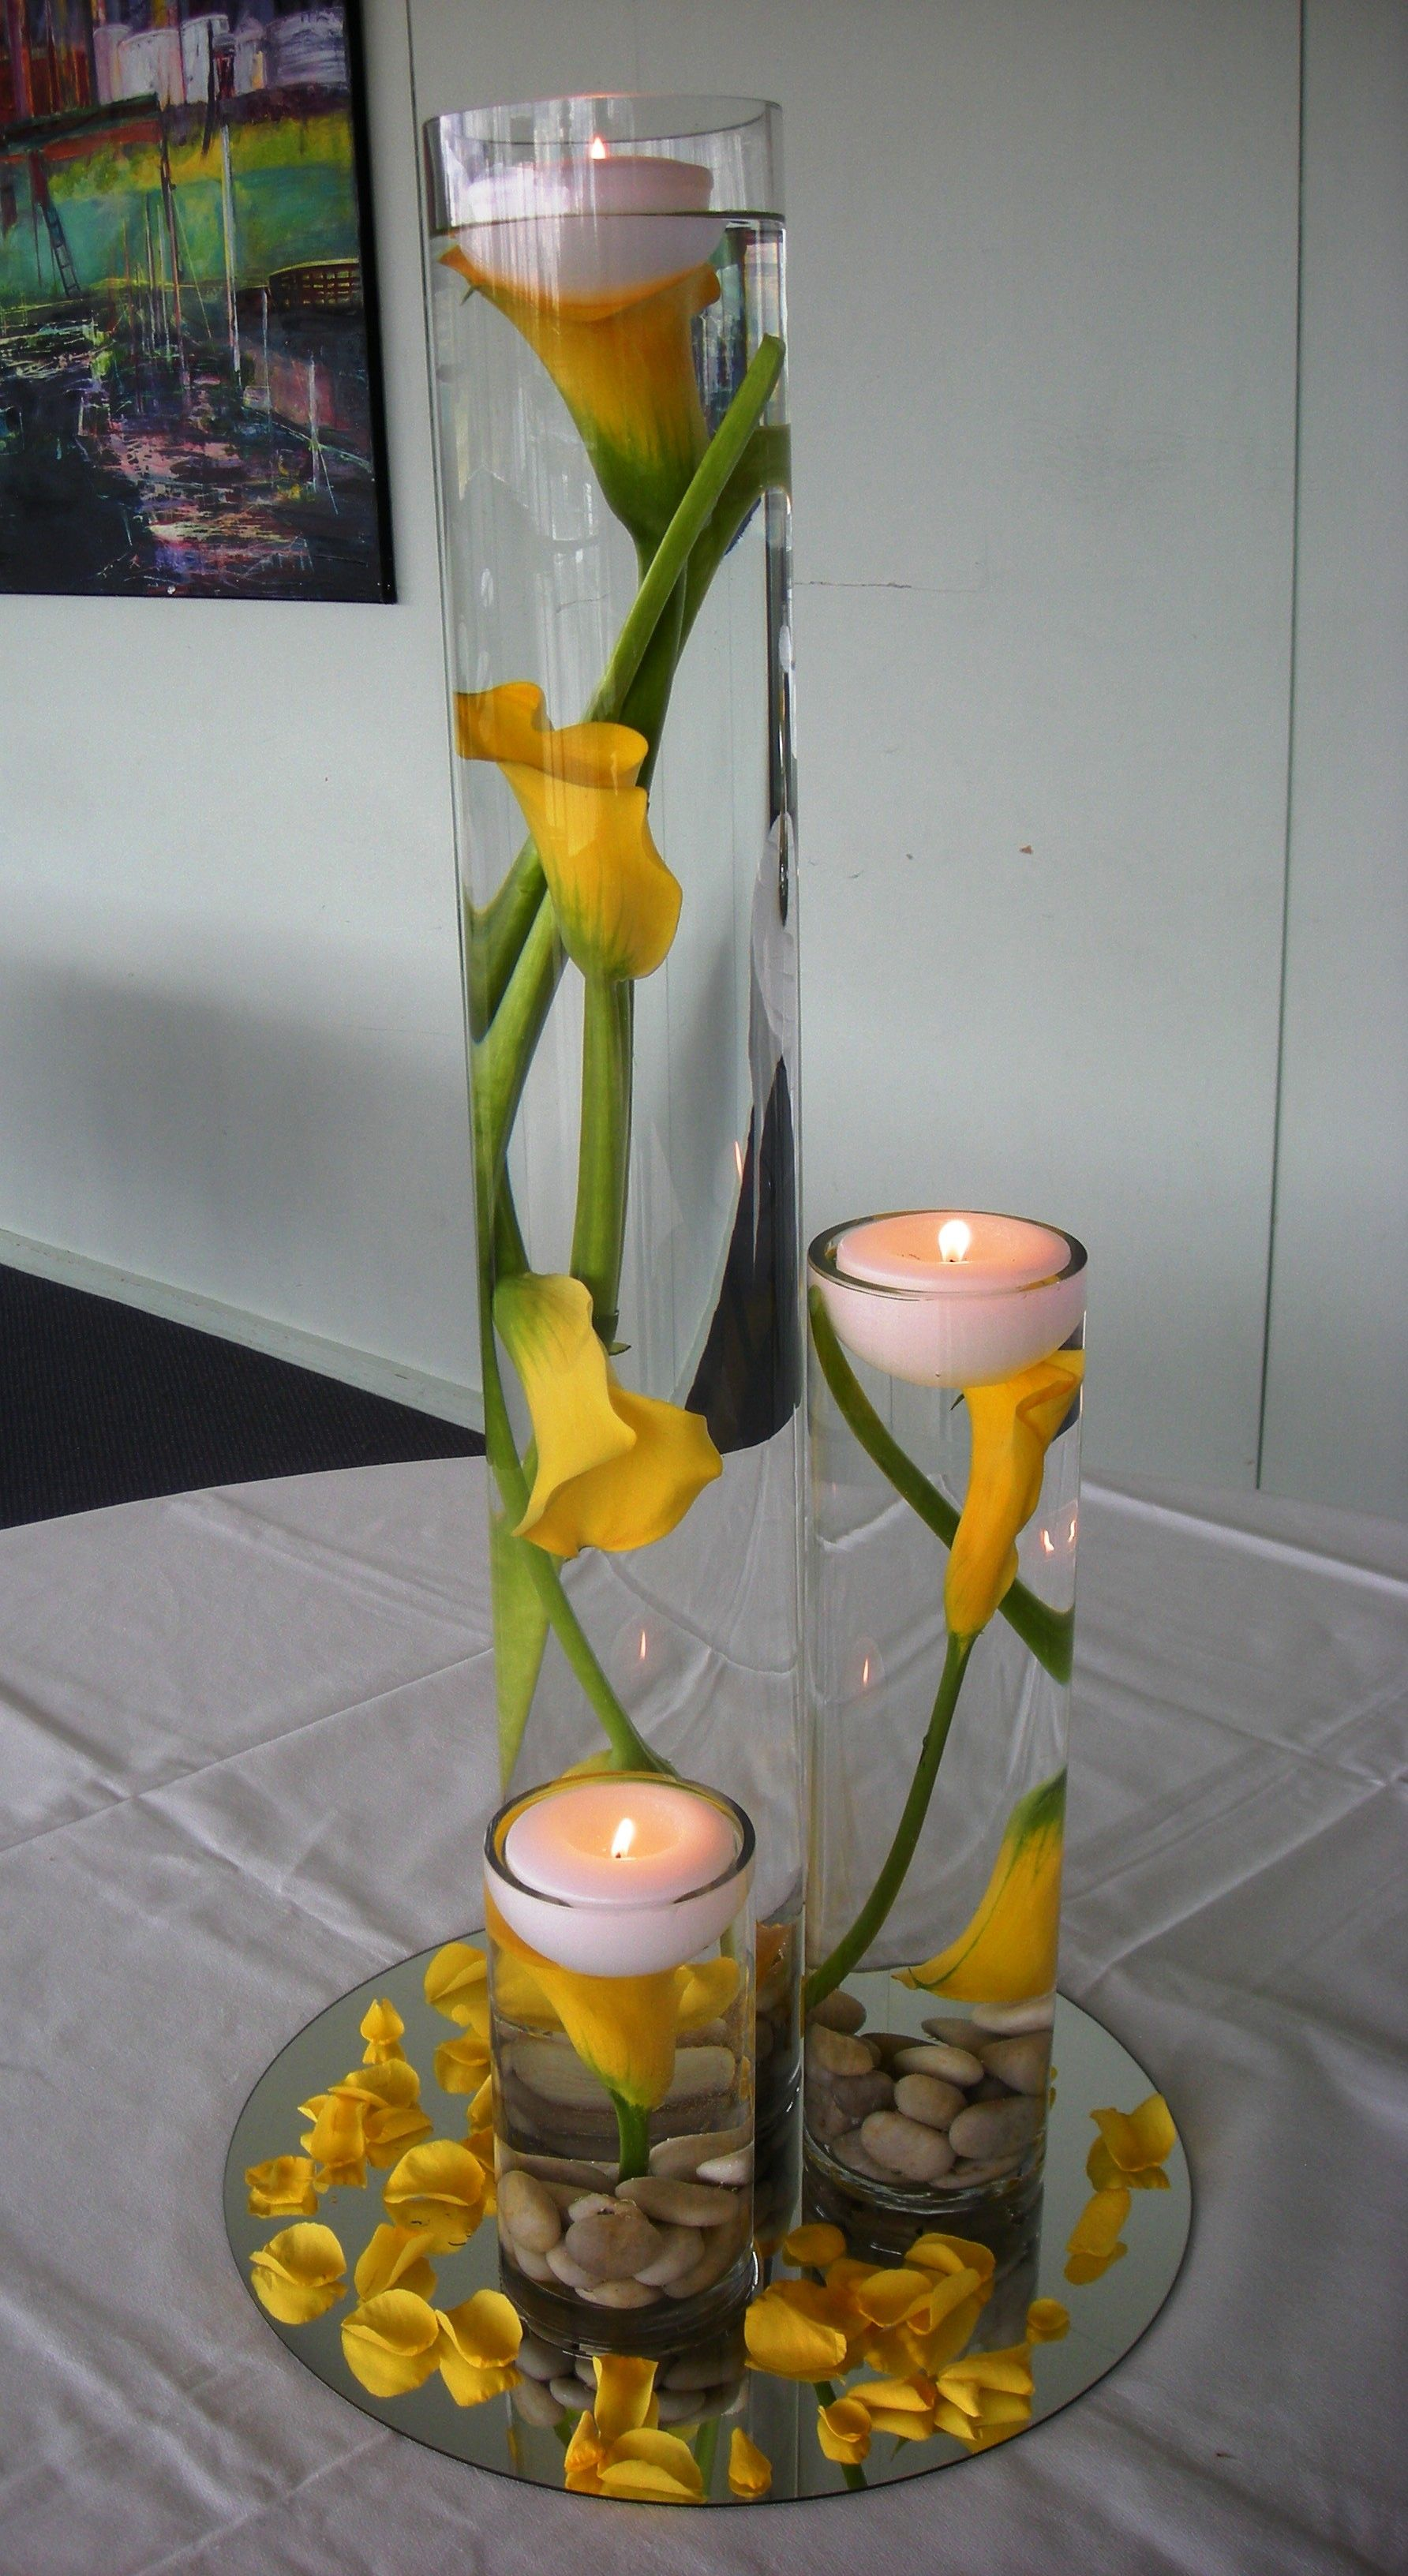 Stunning yellow calla lily center pieces i would add